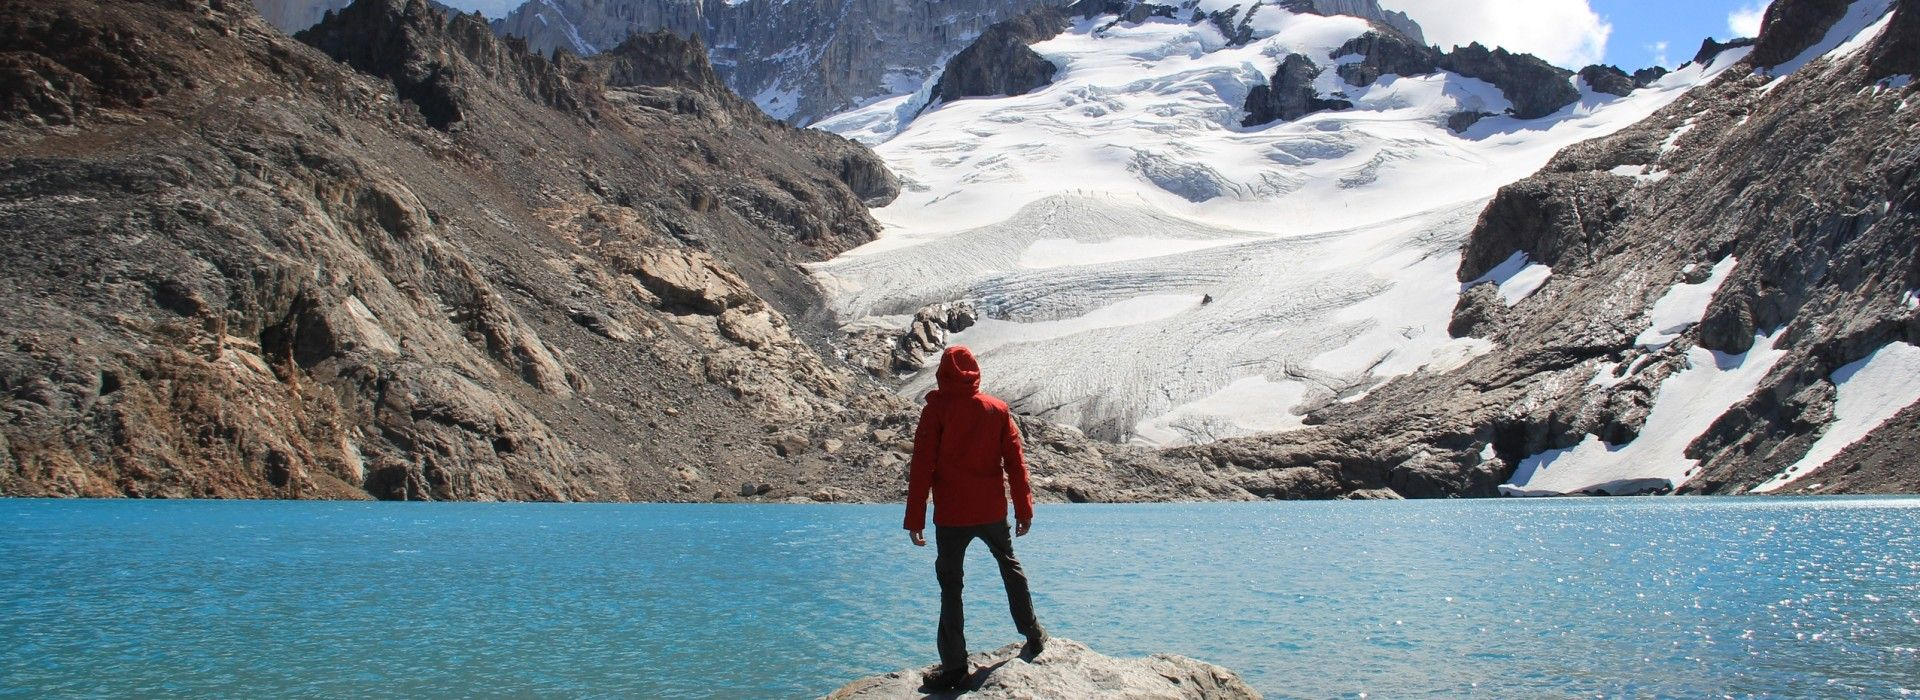 Patagonia tours in Chile and trips in Patagonia in Chile